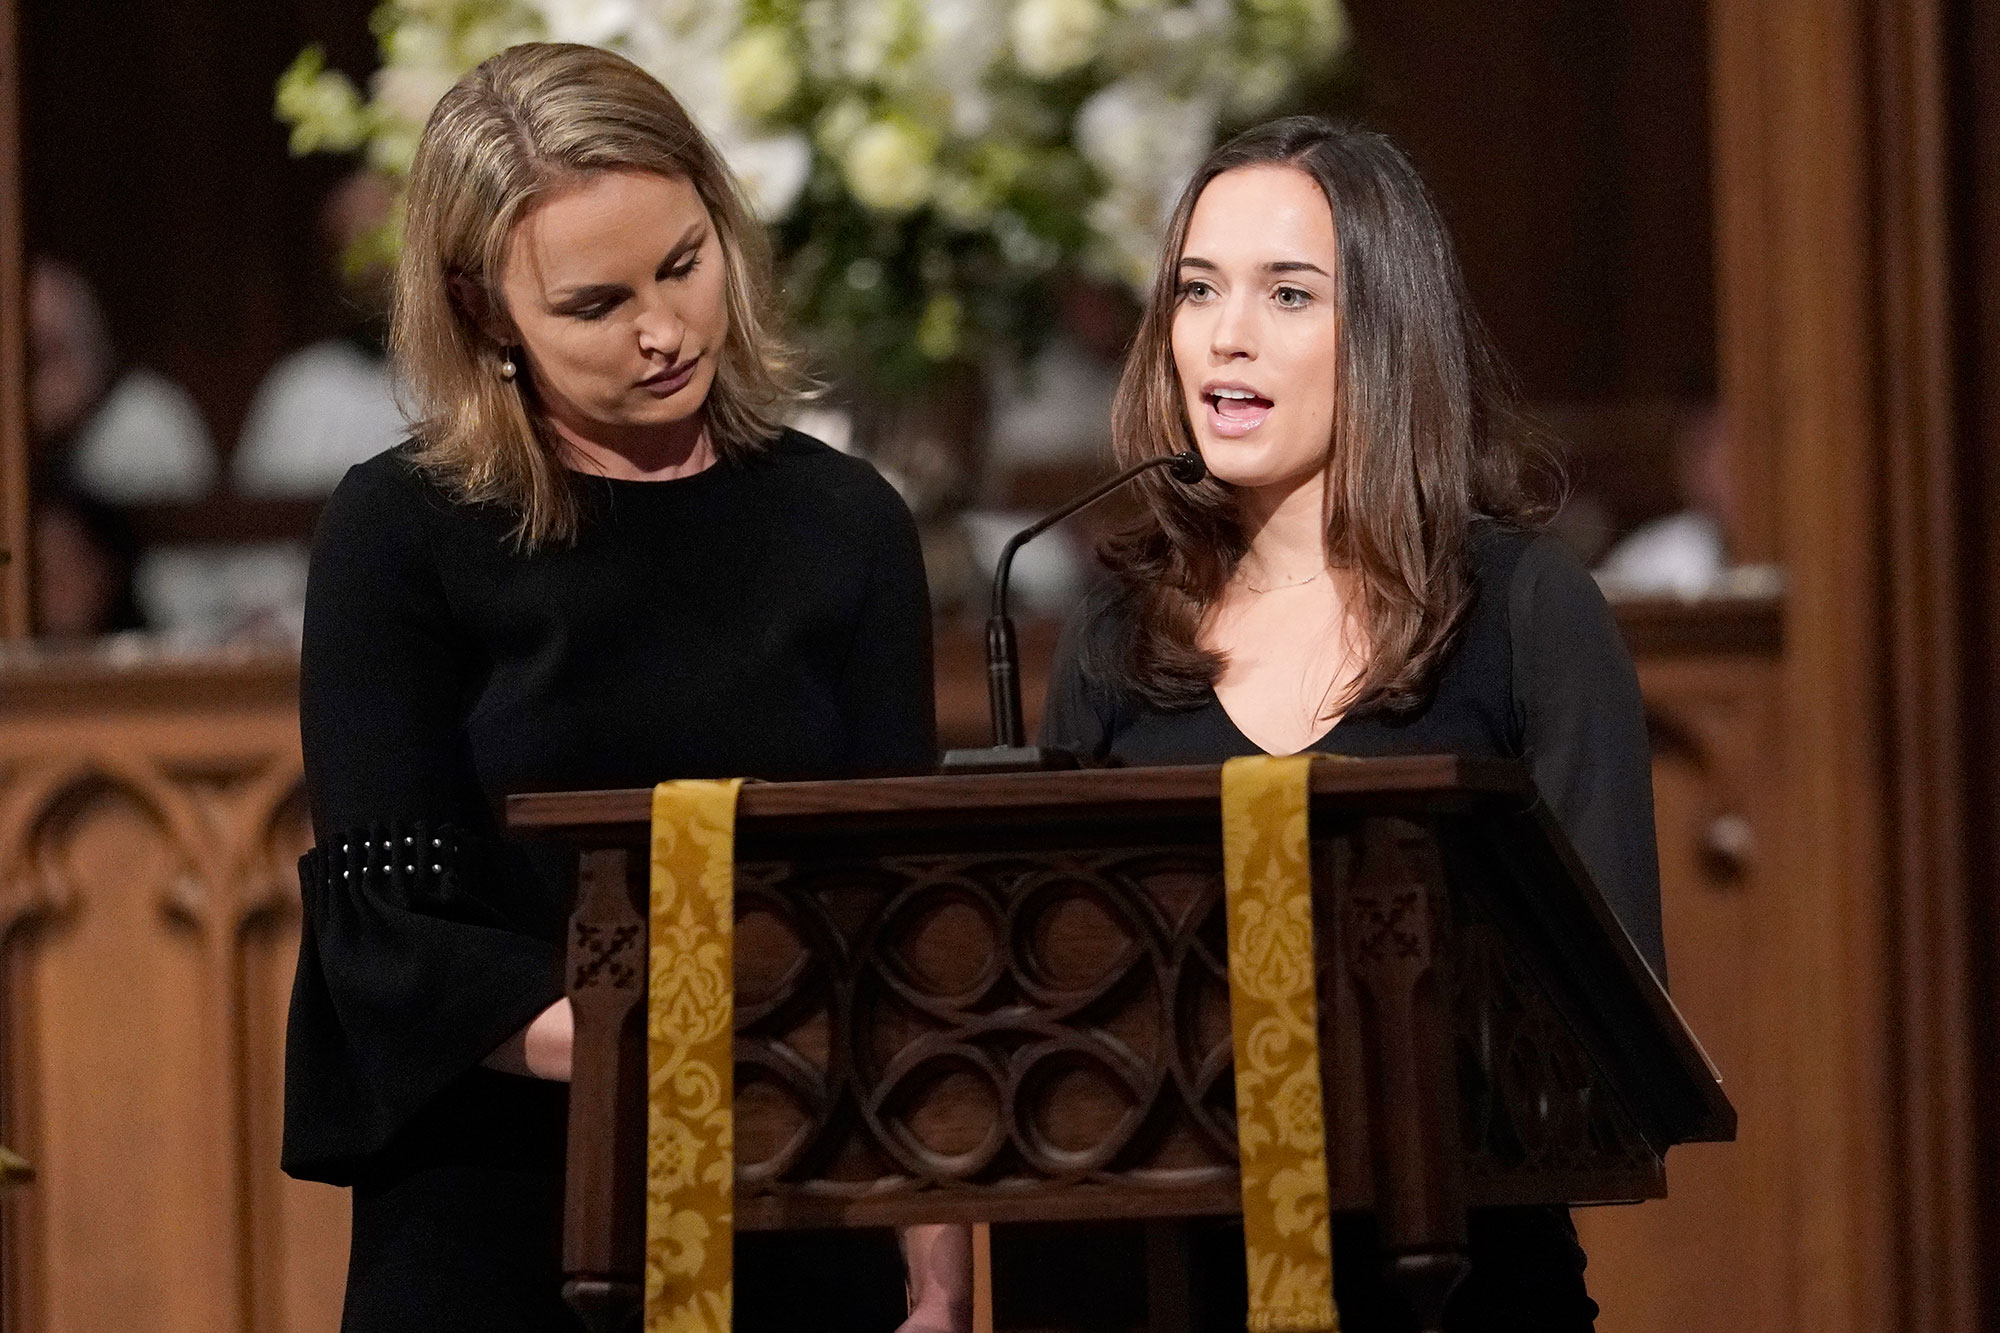 "<div class=""meta image-caption""><div class=""origin-logo origin-image none""><span>none</span></div><span class=""caption-text"">Nancy Ellis LeBlond Sosa, left, and Georgia Grace Koch read scripture during a funeral service for former President George H.W. Bush at St. Martin's Episcopal Church Thursday. (David J. Phillip, Pool/AP Photo)</span></div>"